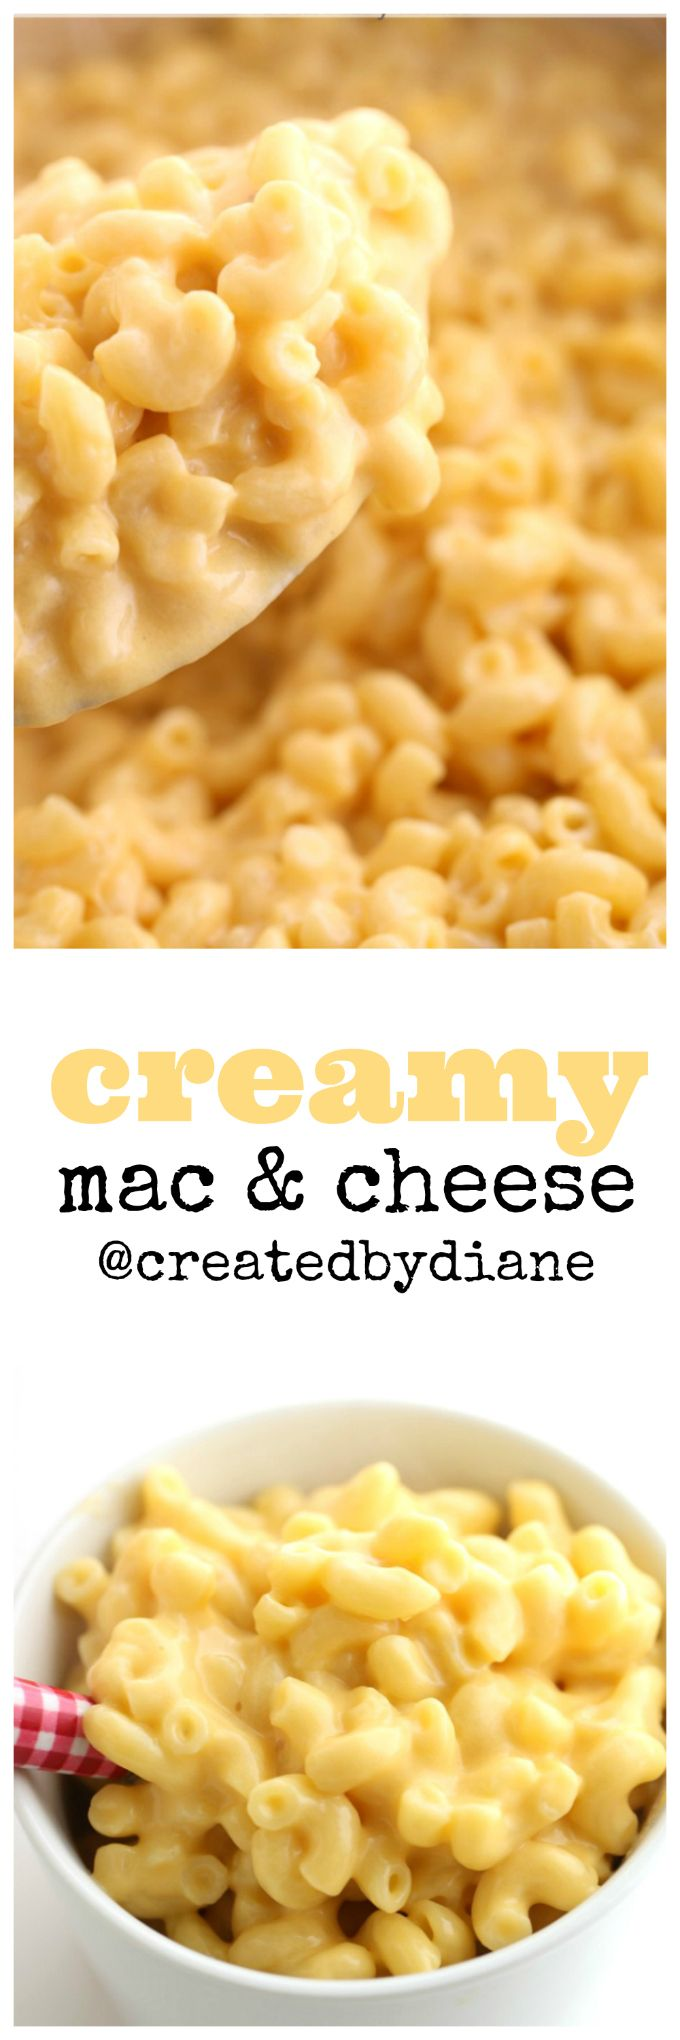 creamy mac and cheese recipe @createdbydiane